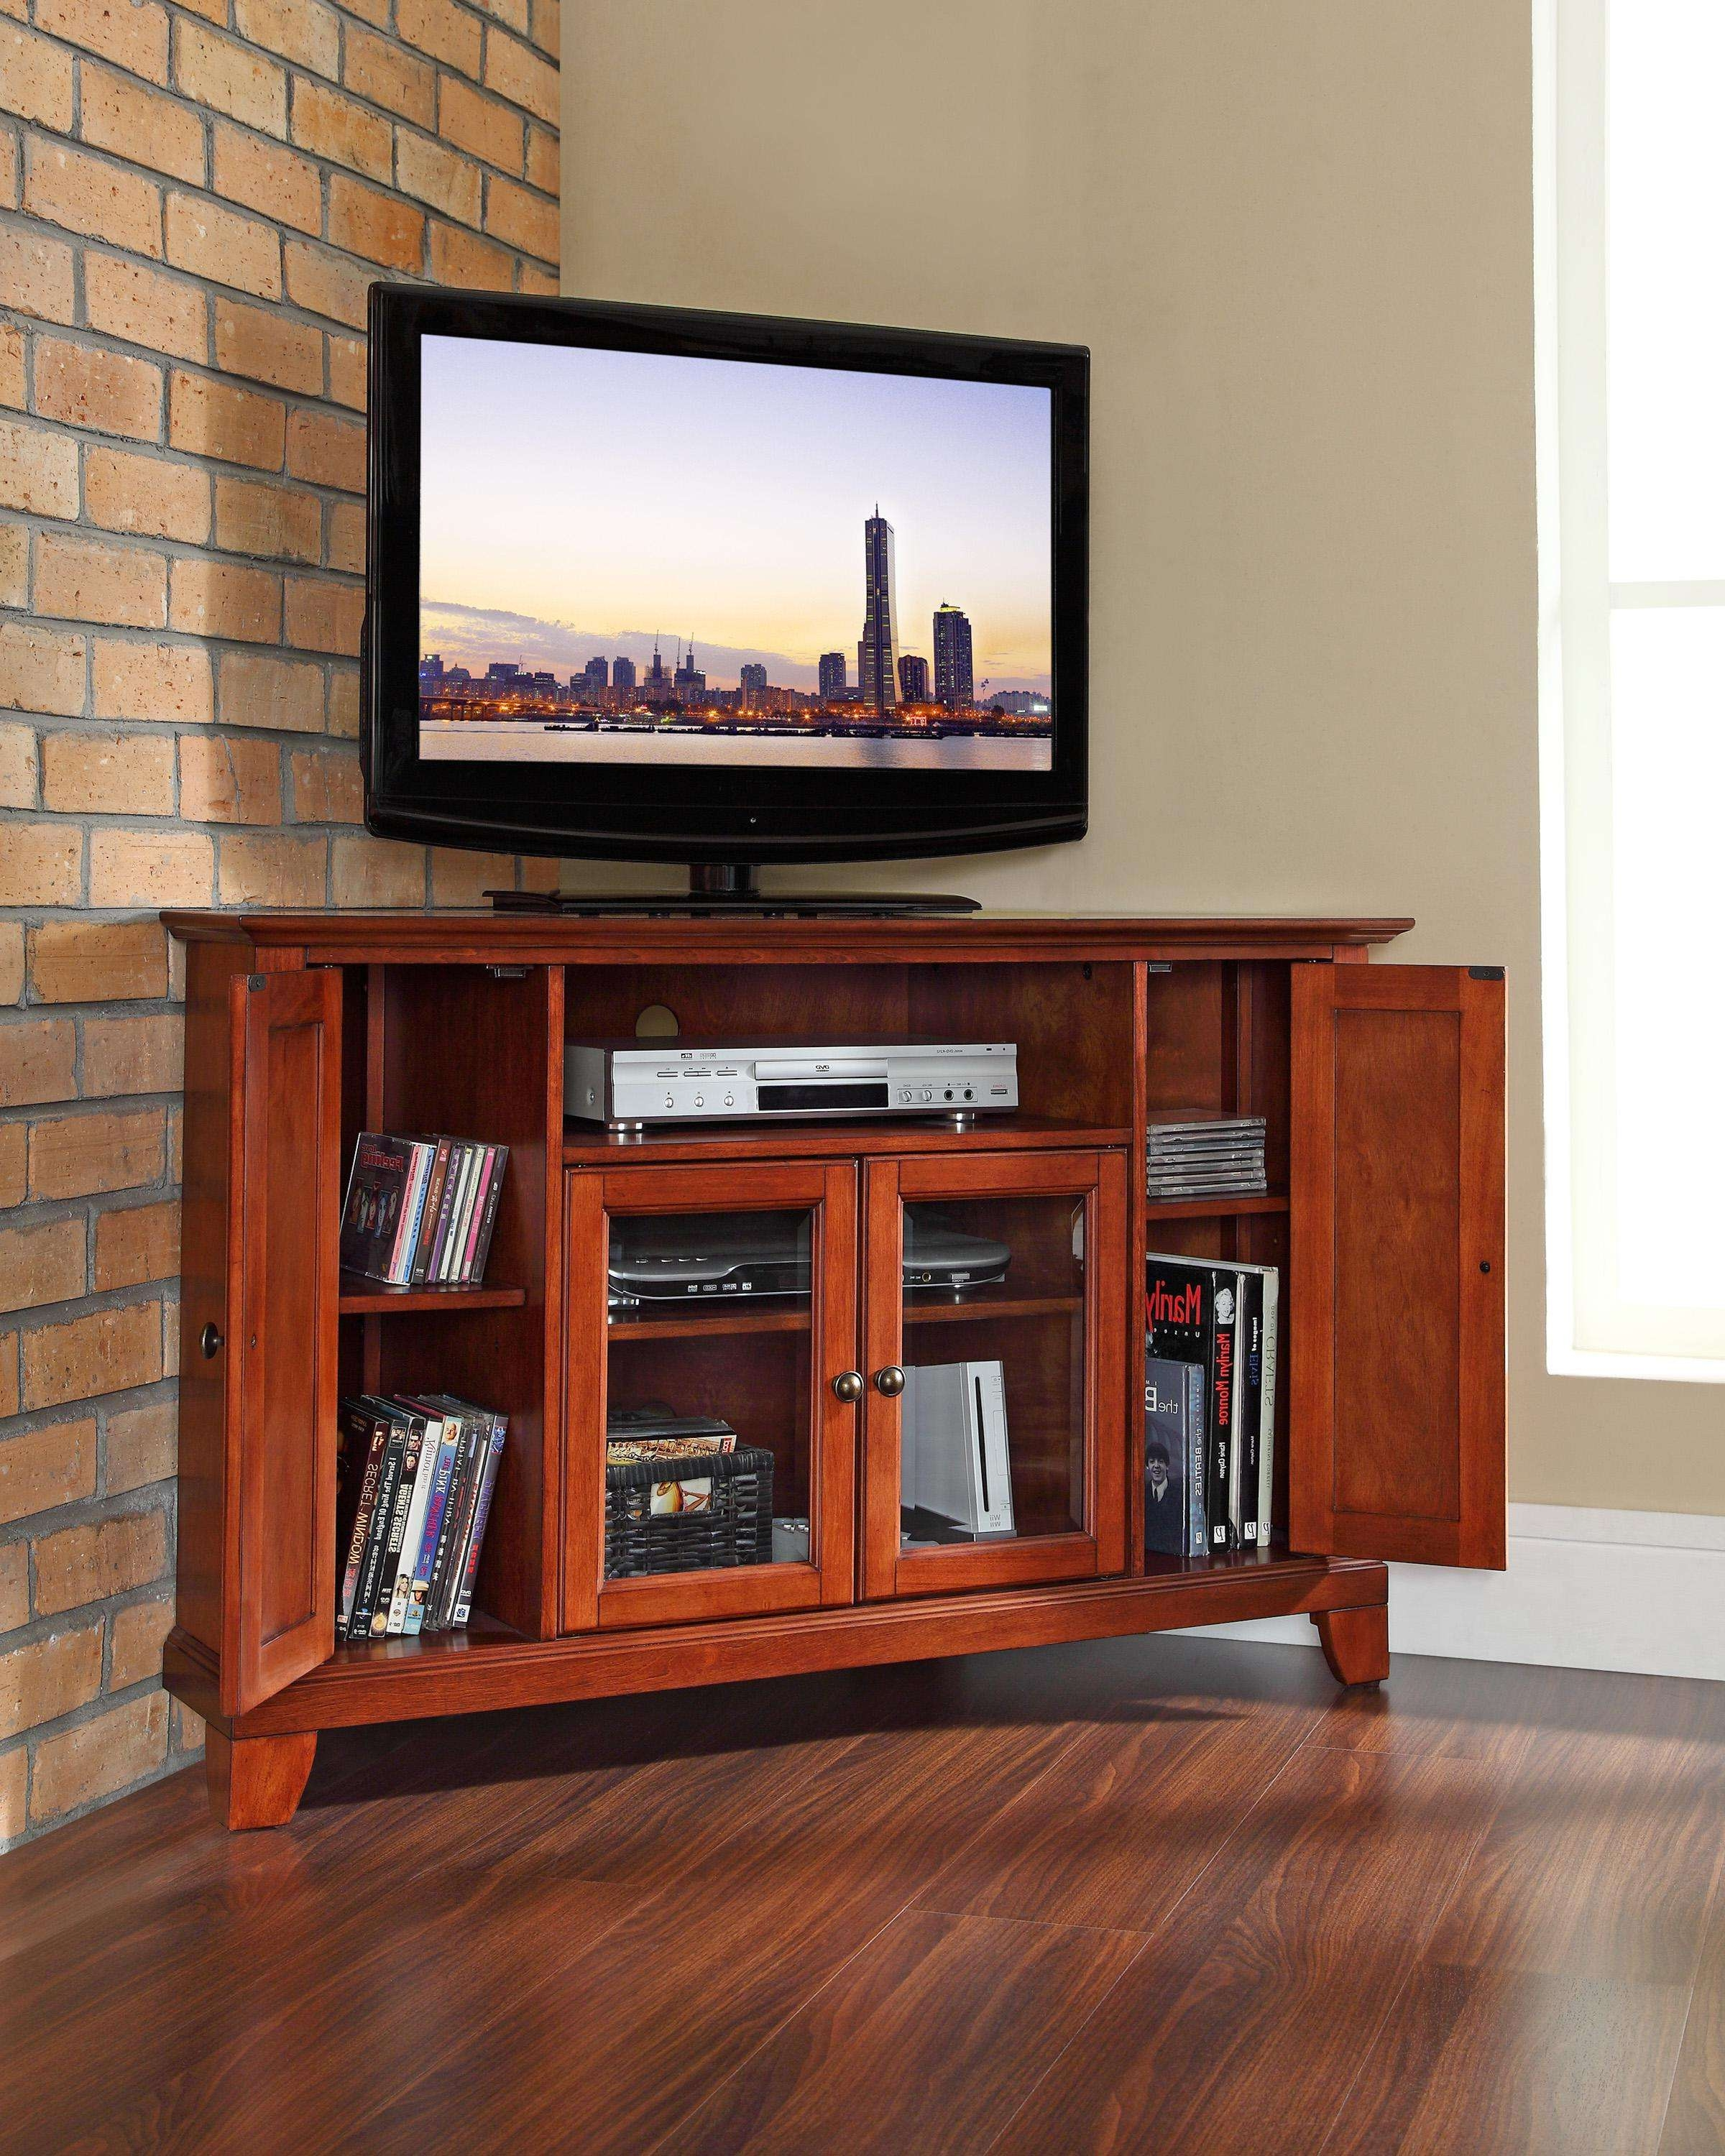 Console Tables : Whalen Tv Stand Flat Screen Walmart Console Mount In Flat Screen Tv Stands Corner Units (View 17 of 20)